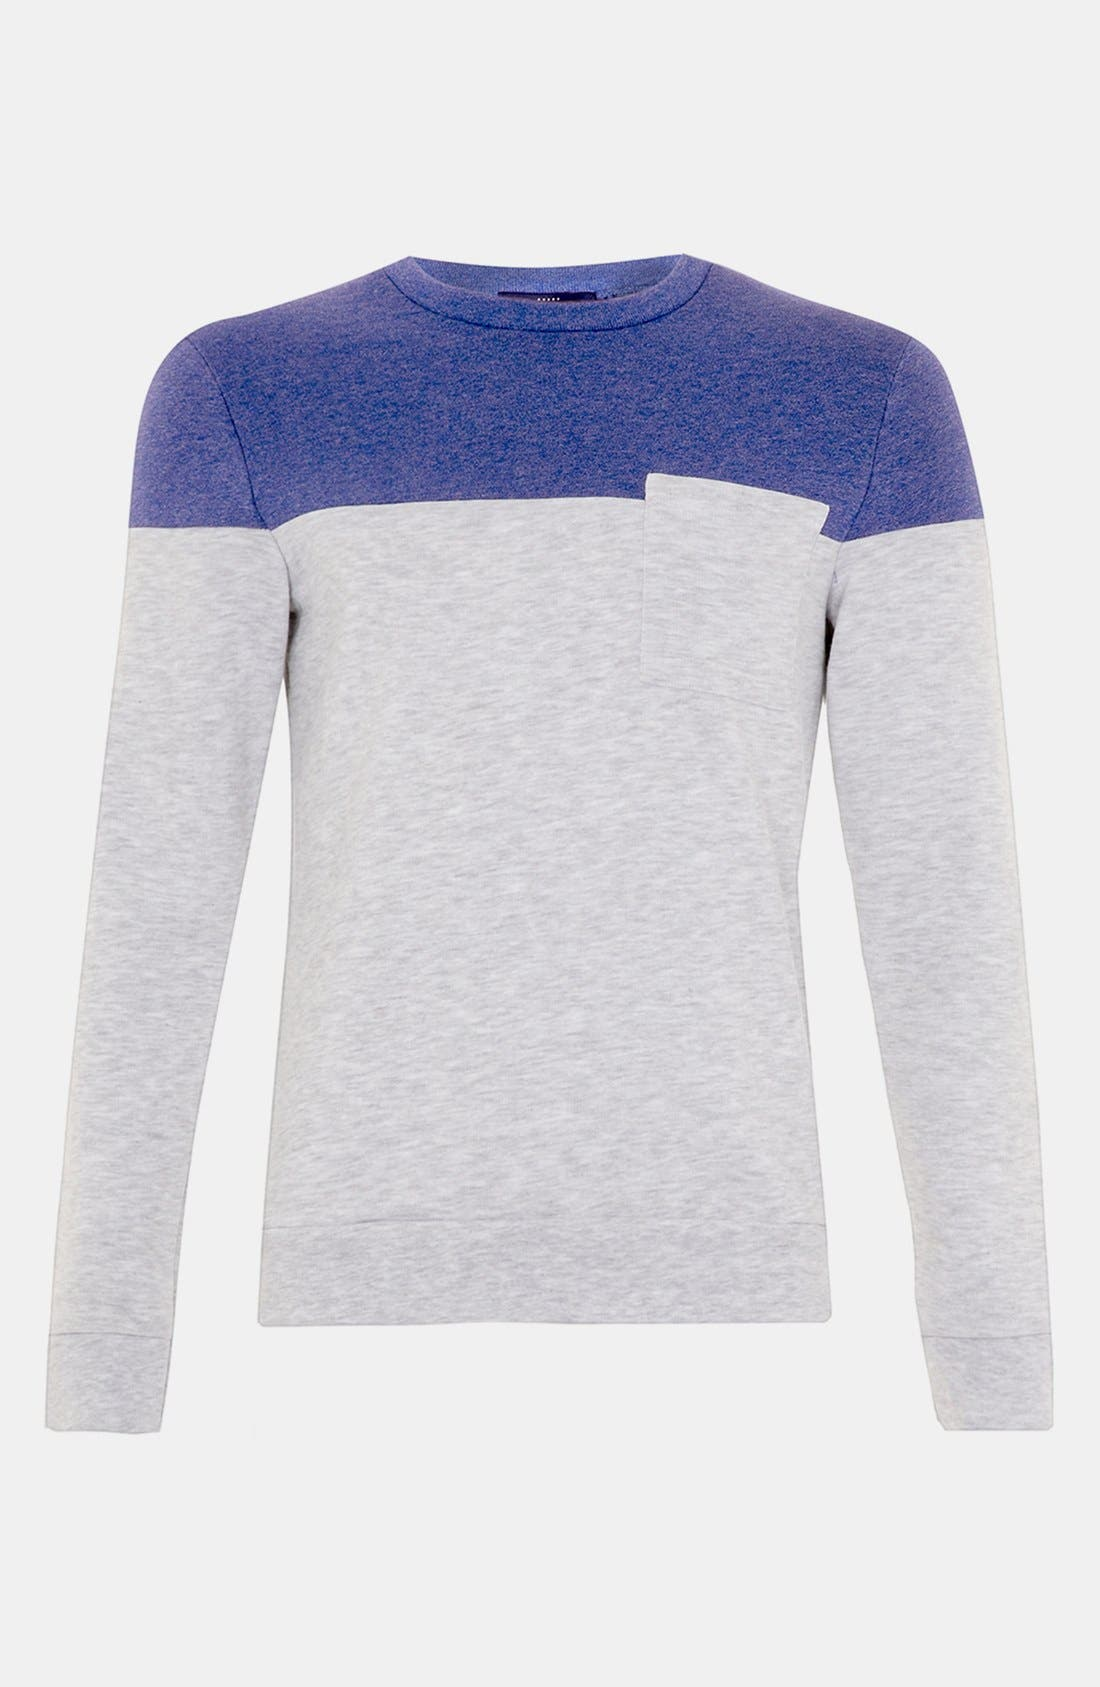 Alternate Image 1 Selected - Topman Cut & Sew Crewneck Sweatshirt